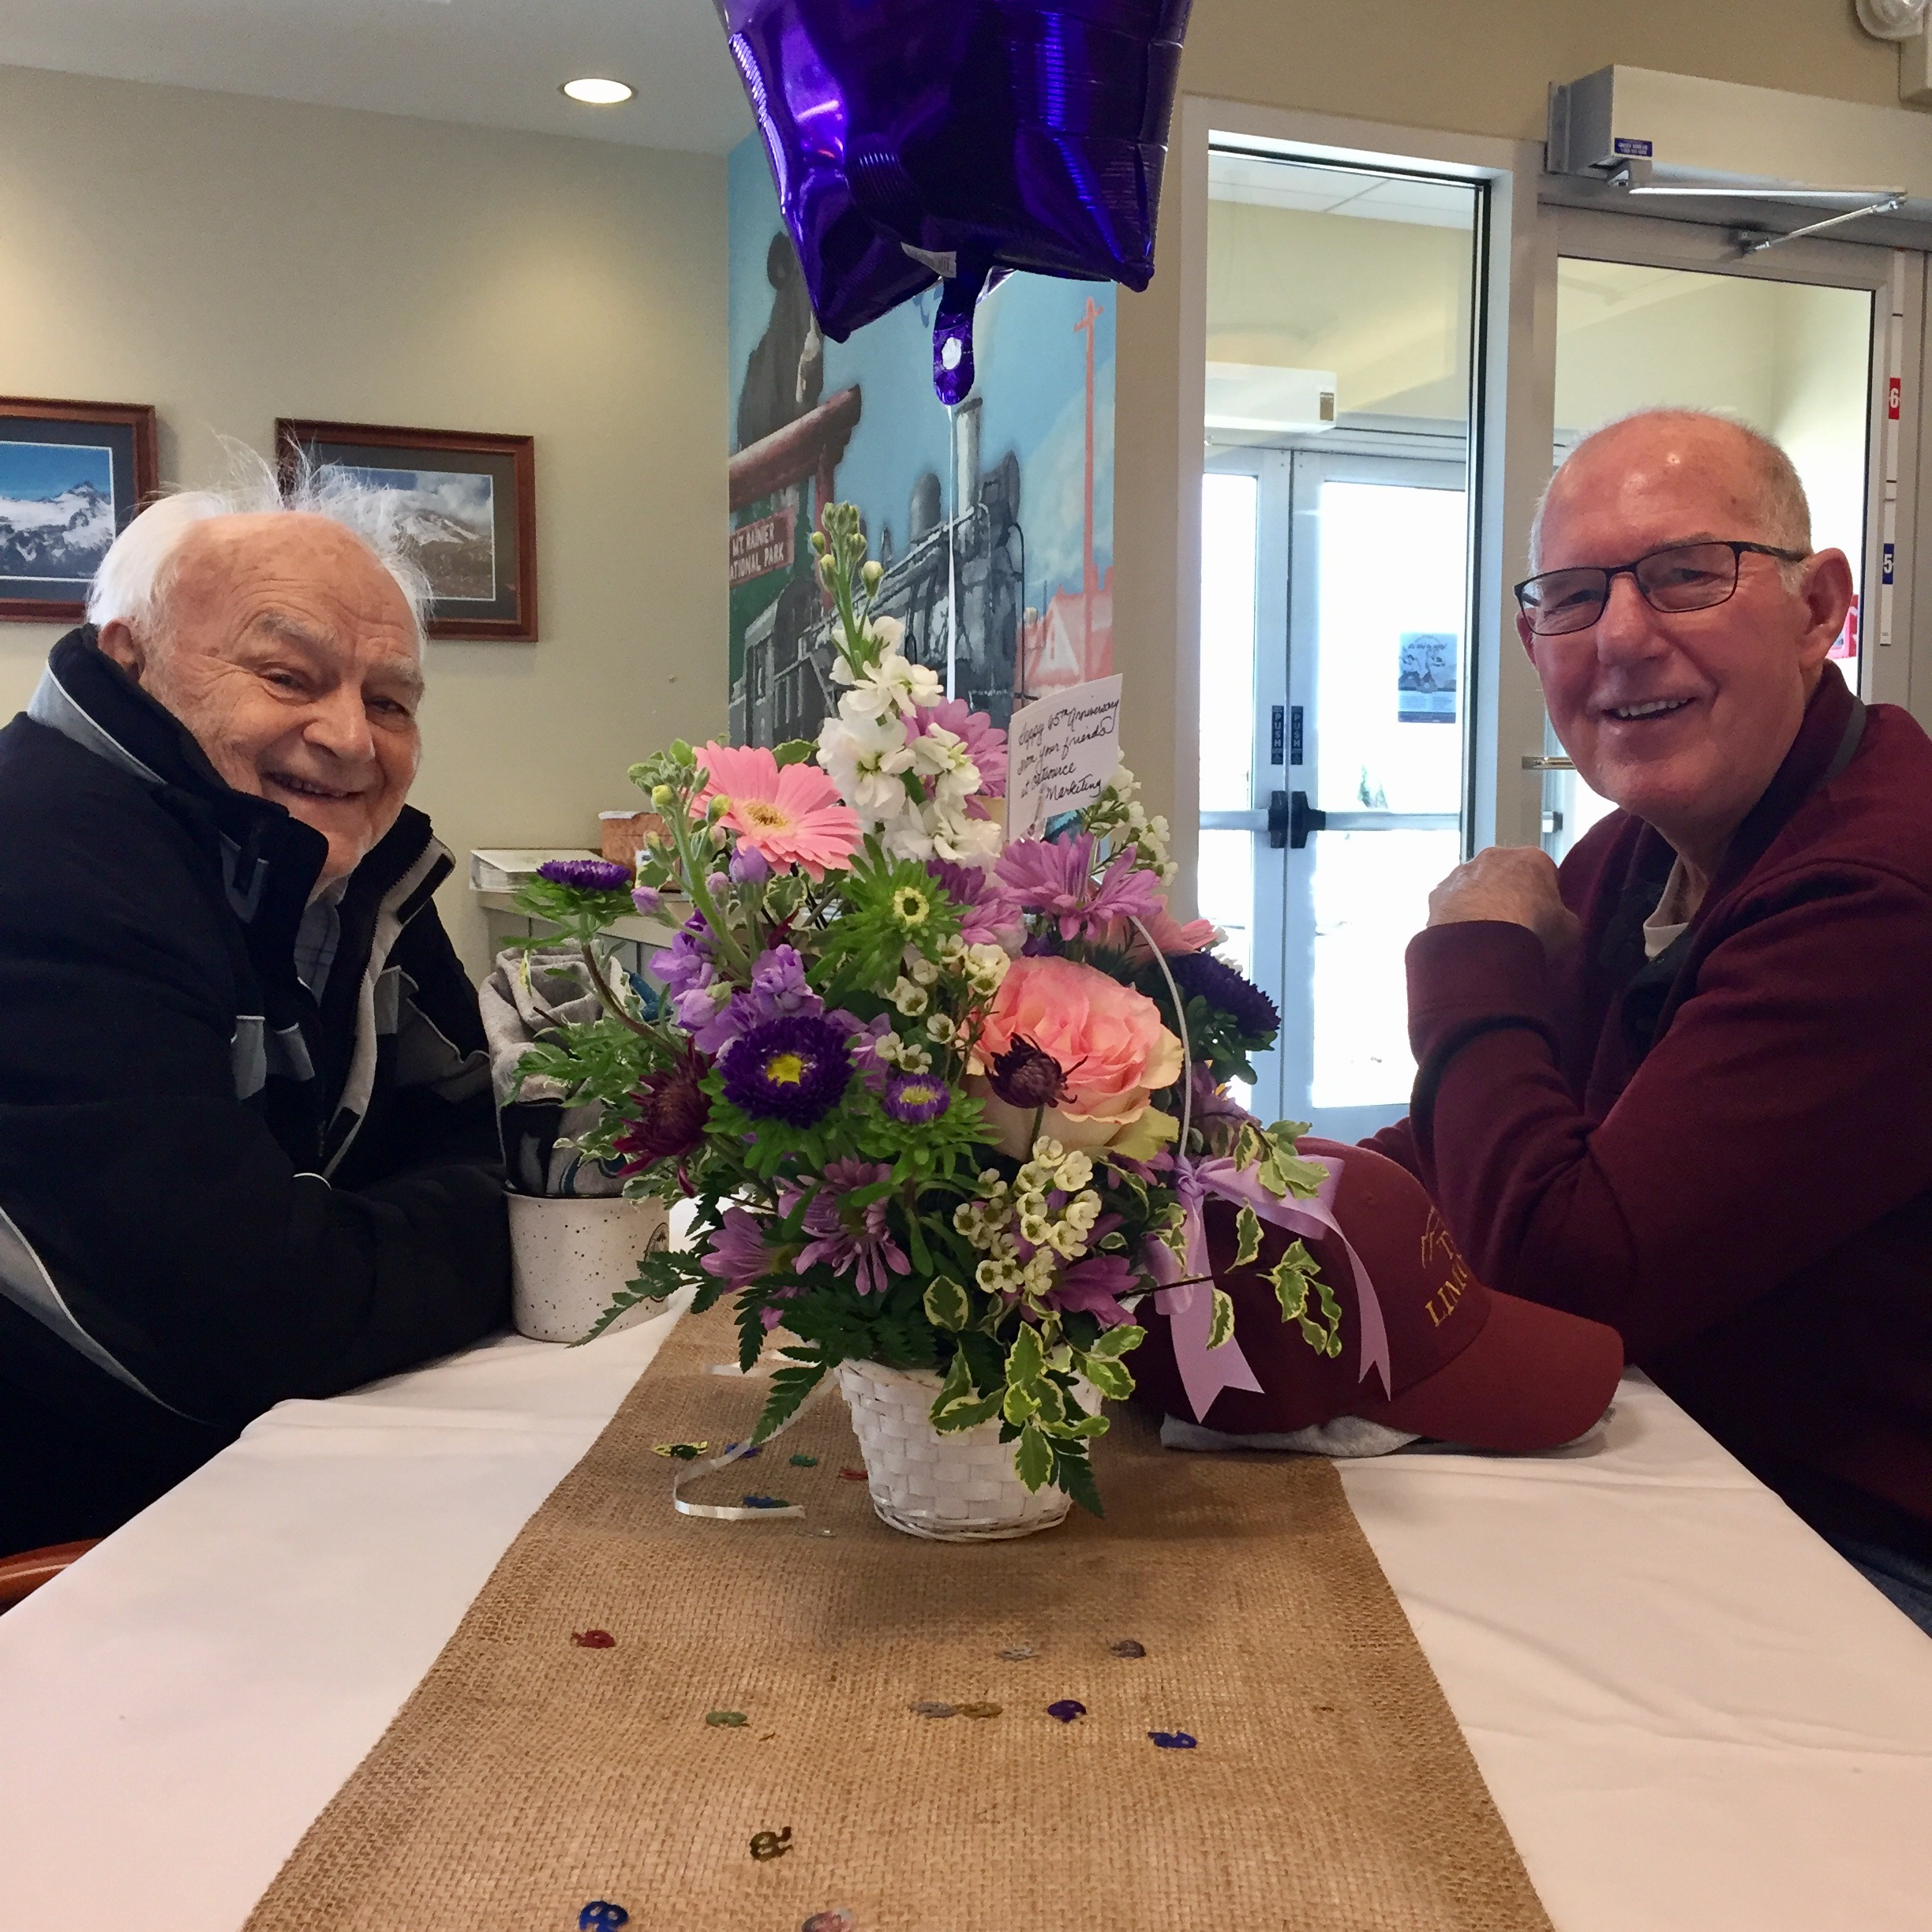 men sitting at a table with flowers and balloons